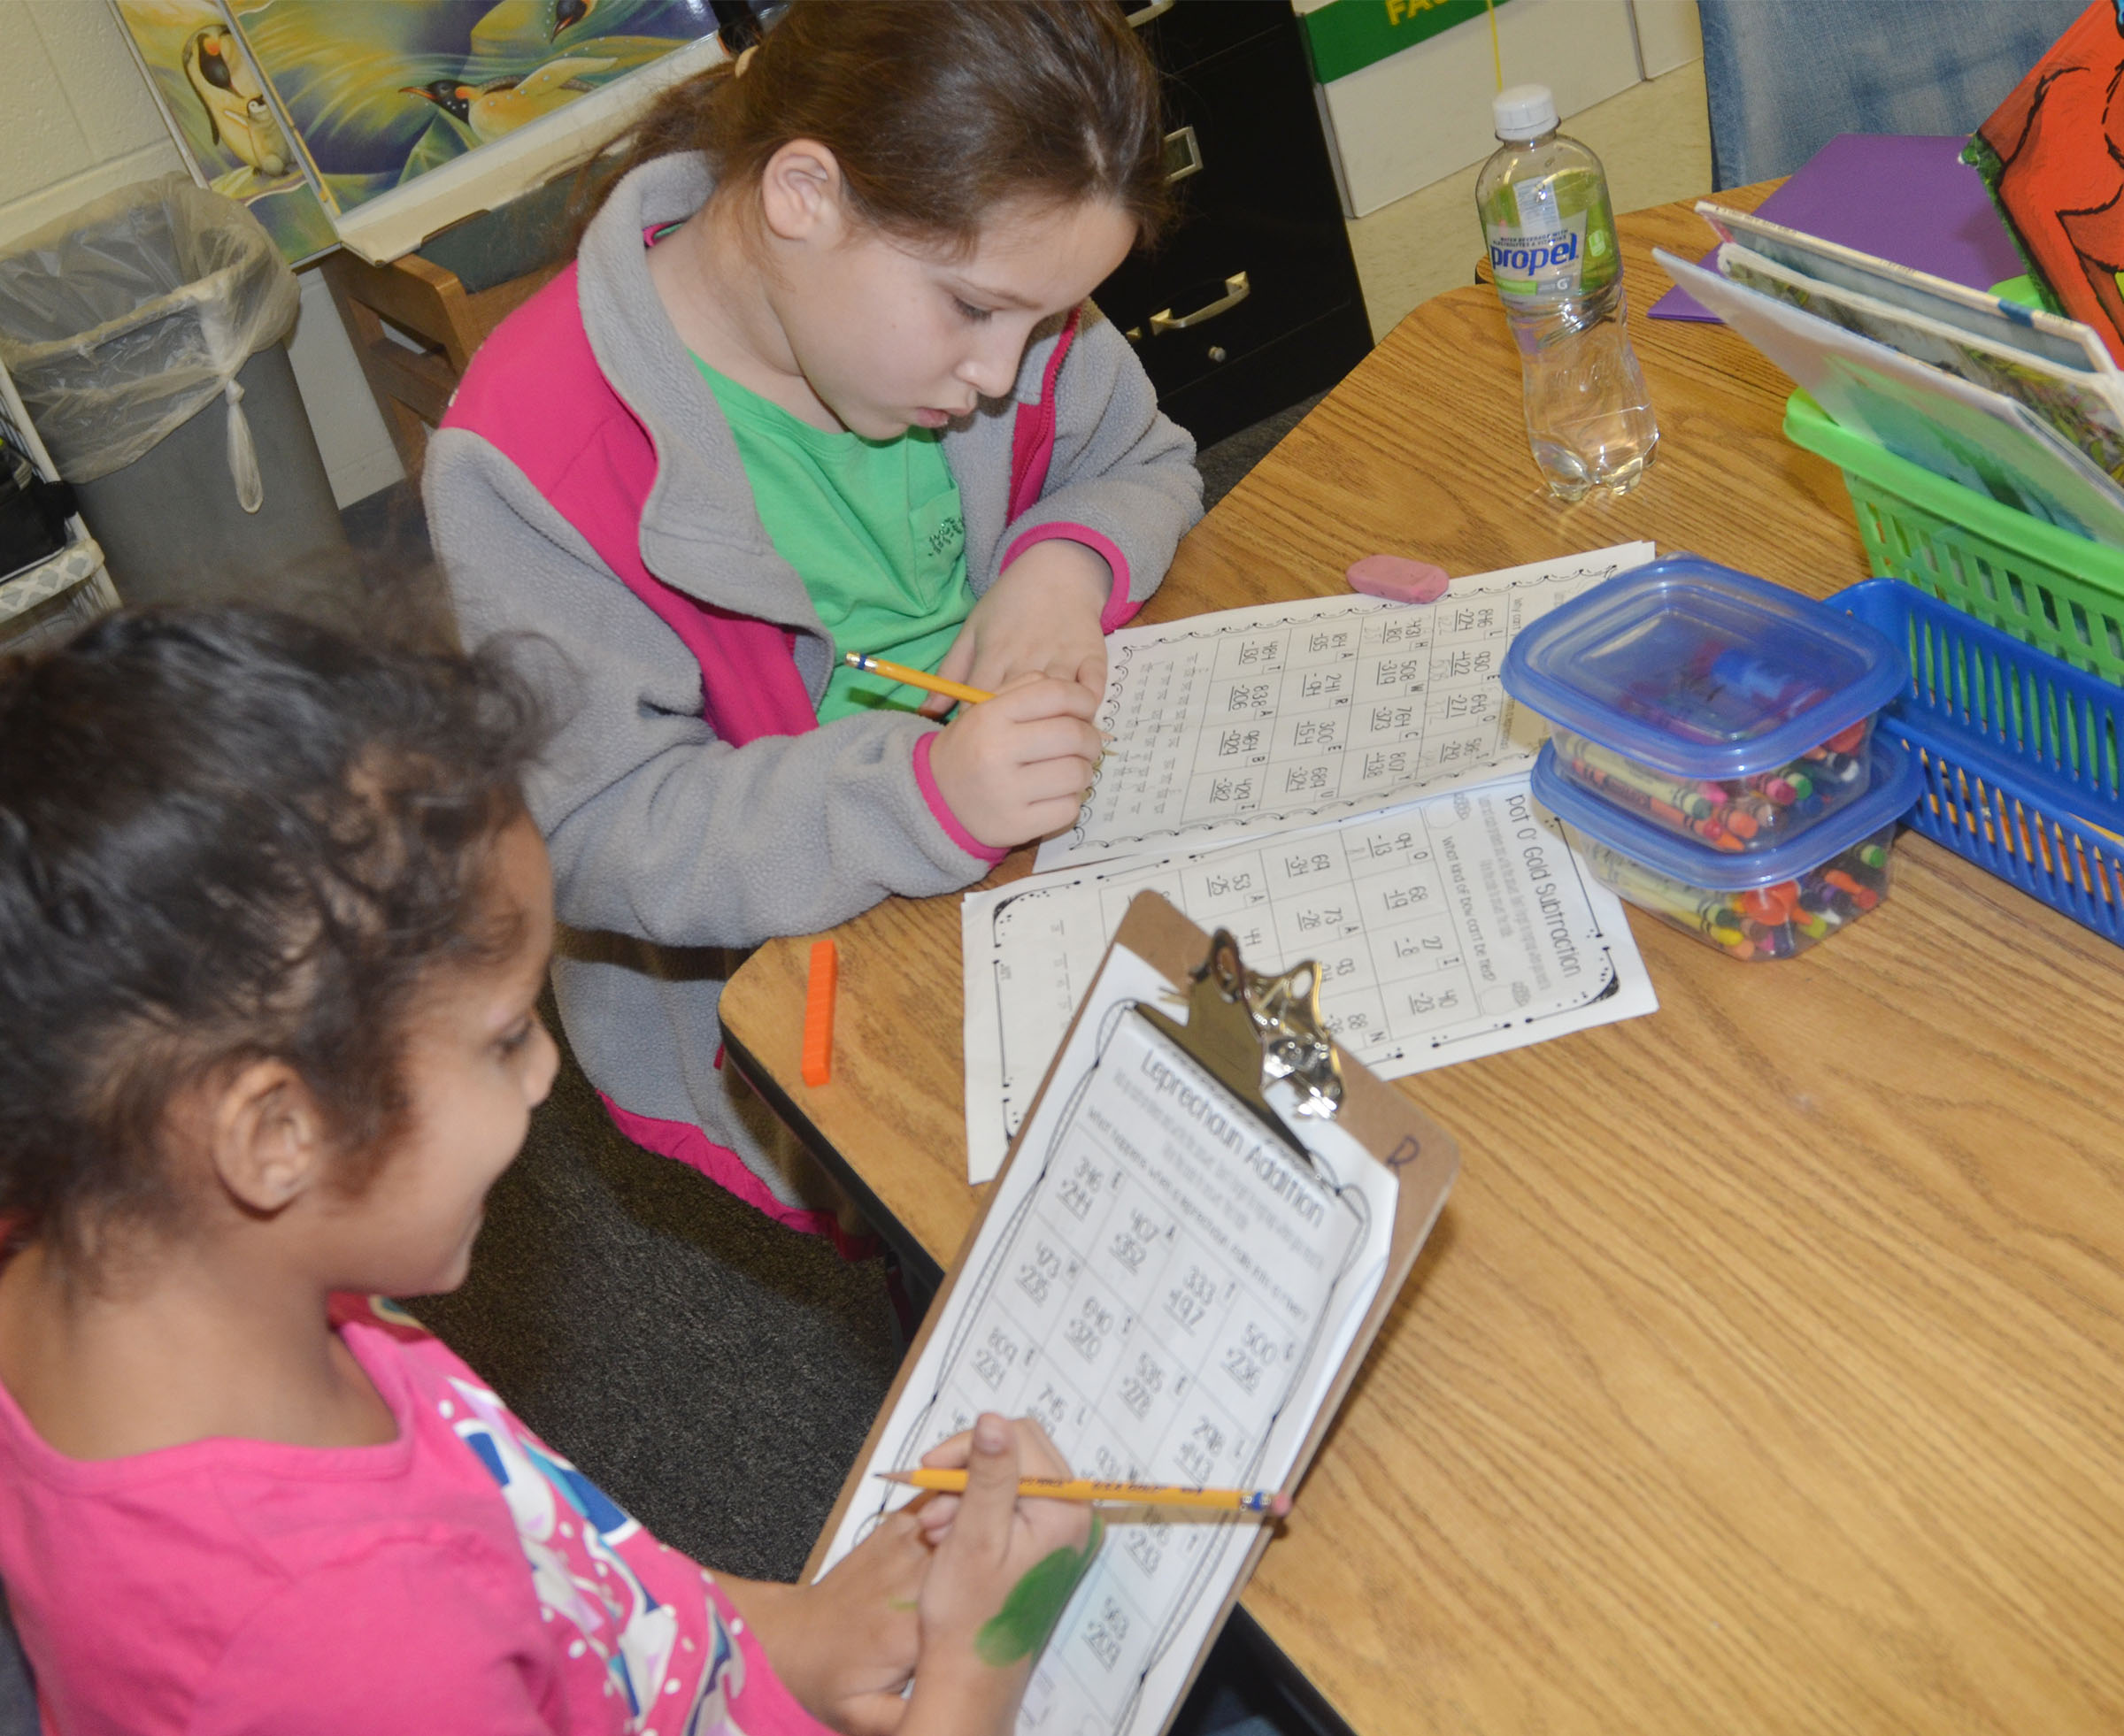 CES second-graders Malia Thompson, at left, and Keely Rakes work St. Patrick's Day math problems together.